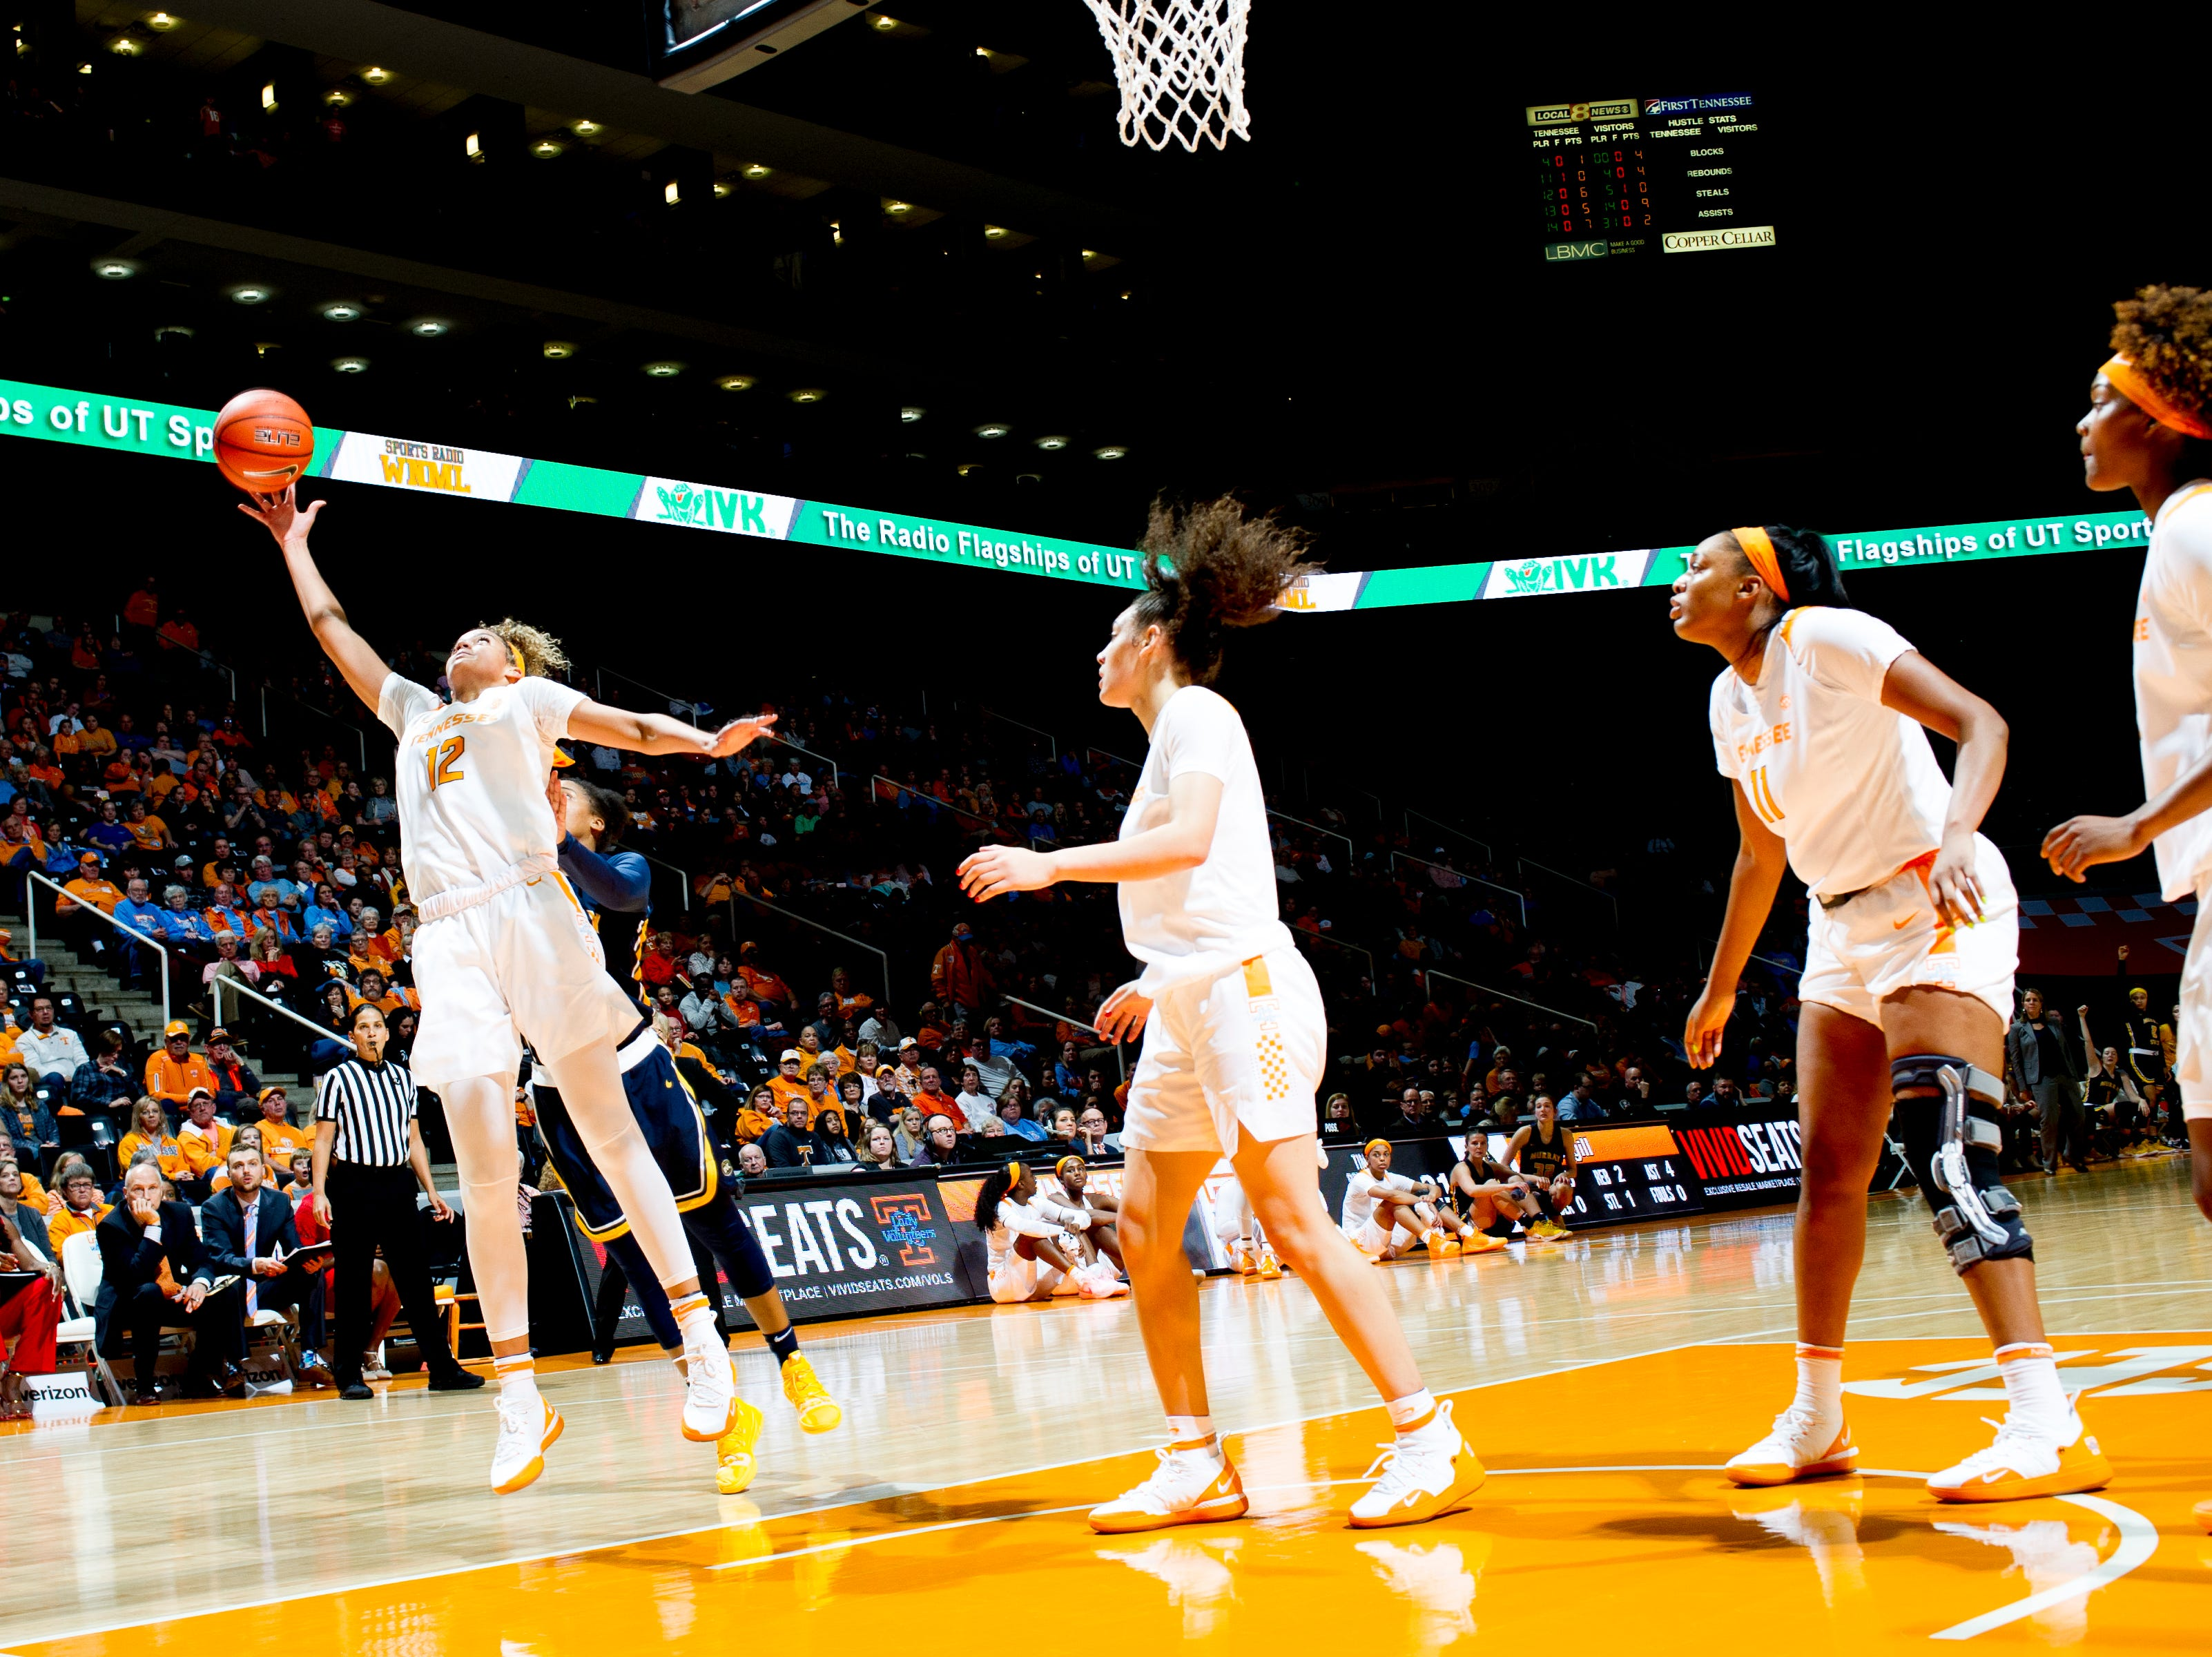 Tennessee guard/forward Rae Burrell (12) goes for a loose ball during a game between the Tennessee Lady Vols and Murray State at Thompson-Boling Arena in Knoxville, Tennessee on Friday, December 28, 2018.